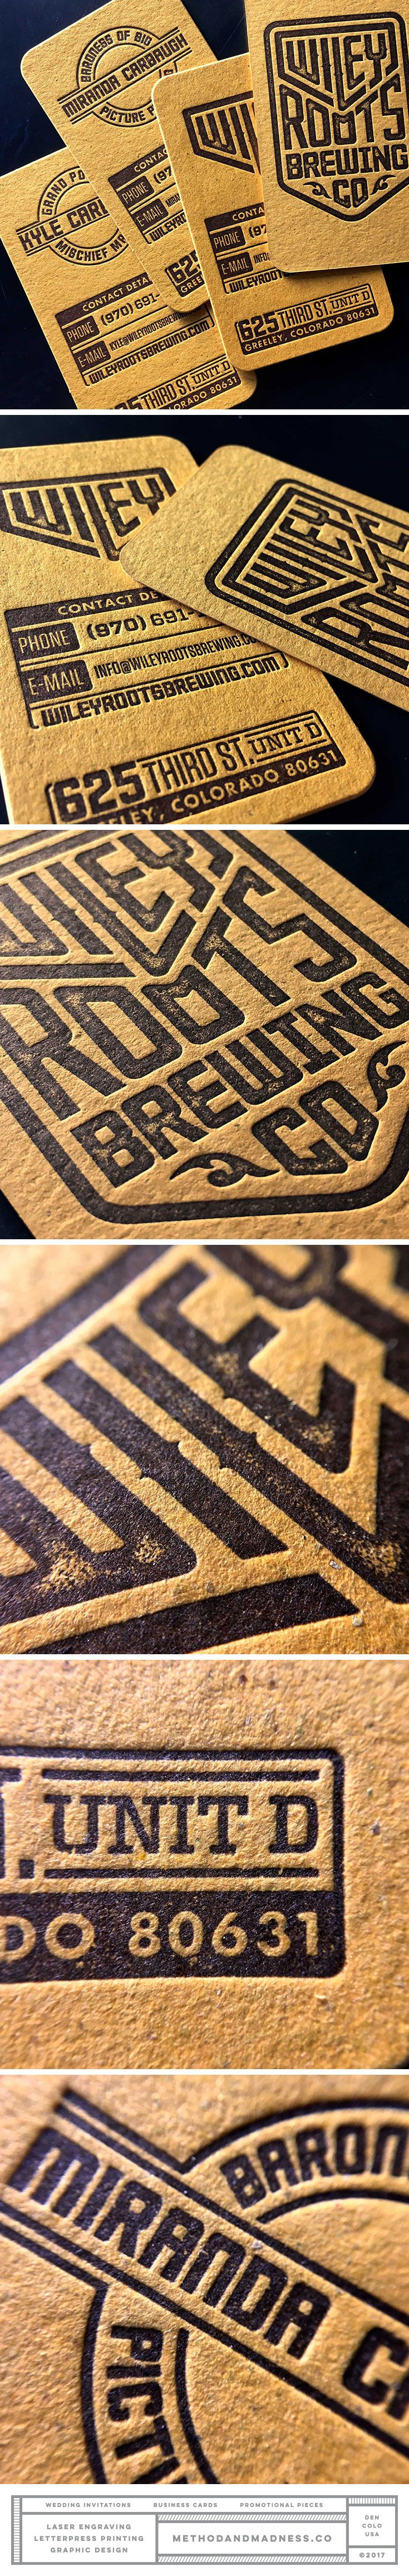 54 best business cards images on pinterest business cards carte diecut letterpress brewery business cards paper contains used hops and malt design by evan colourmoves